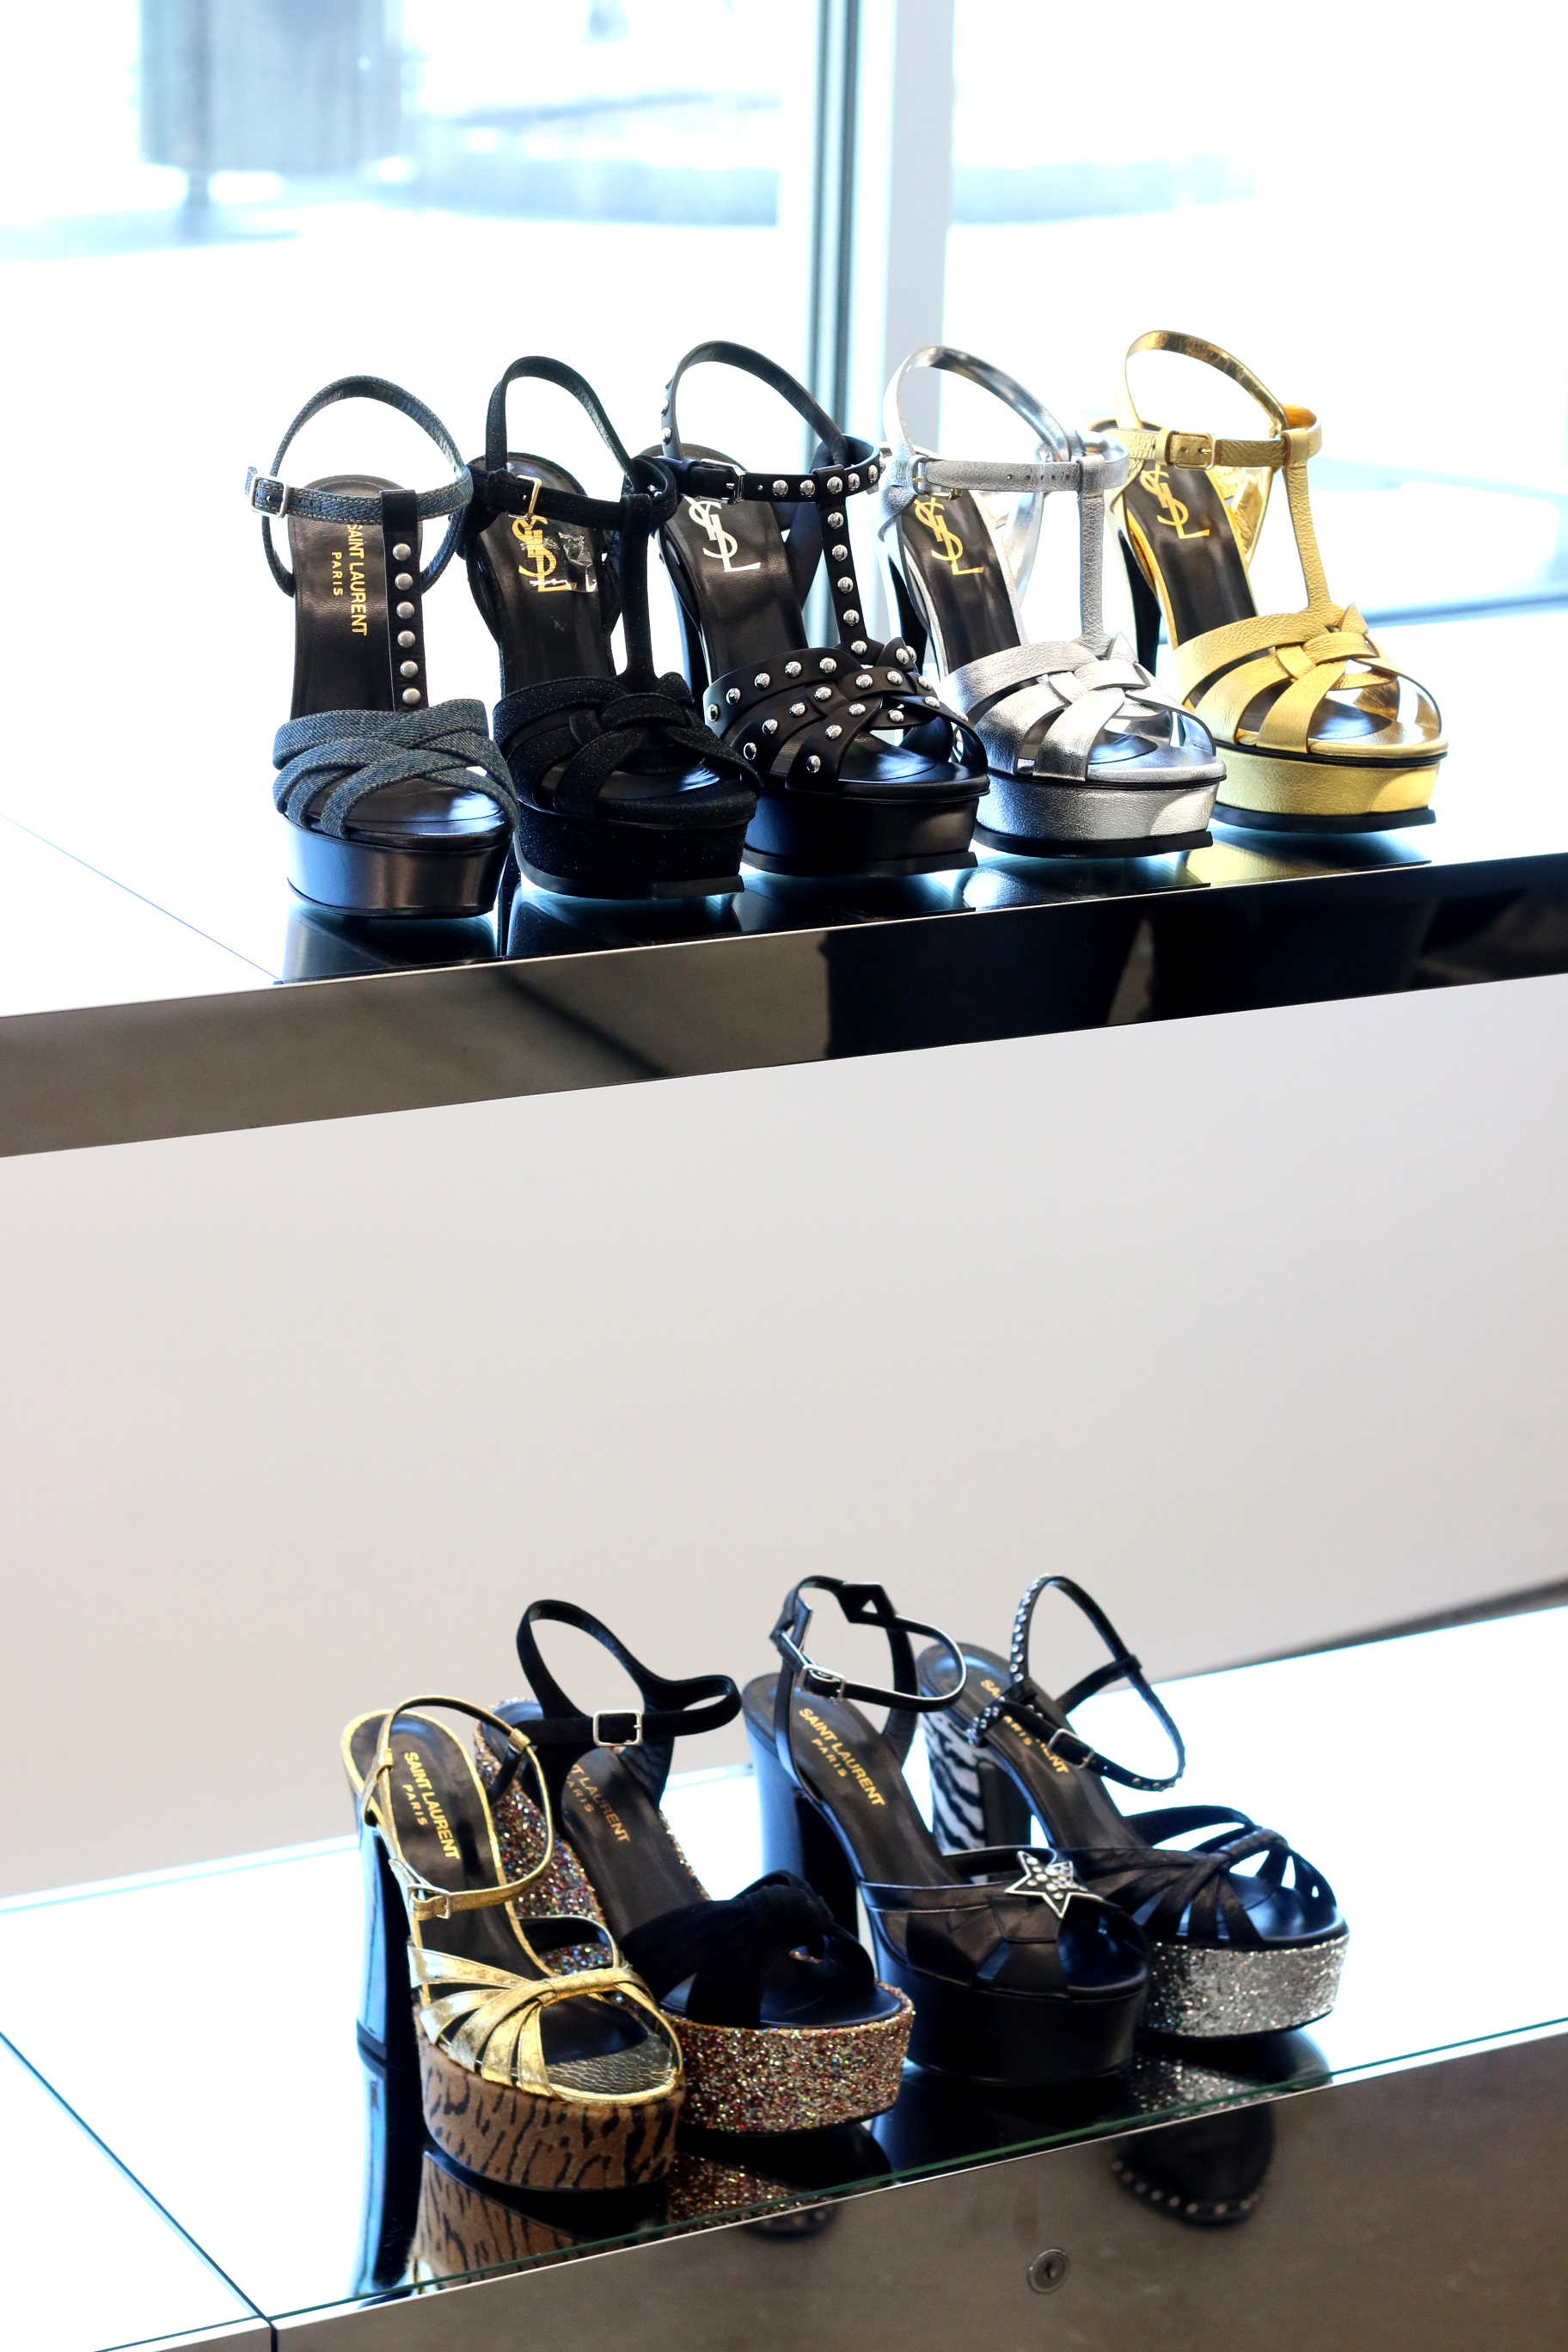 SAINT LAURENT SHOES AT WOODBURY COMMON OUTLET MALL